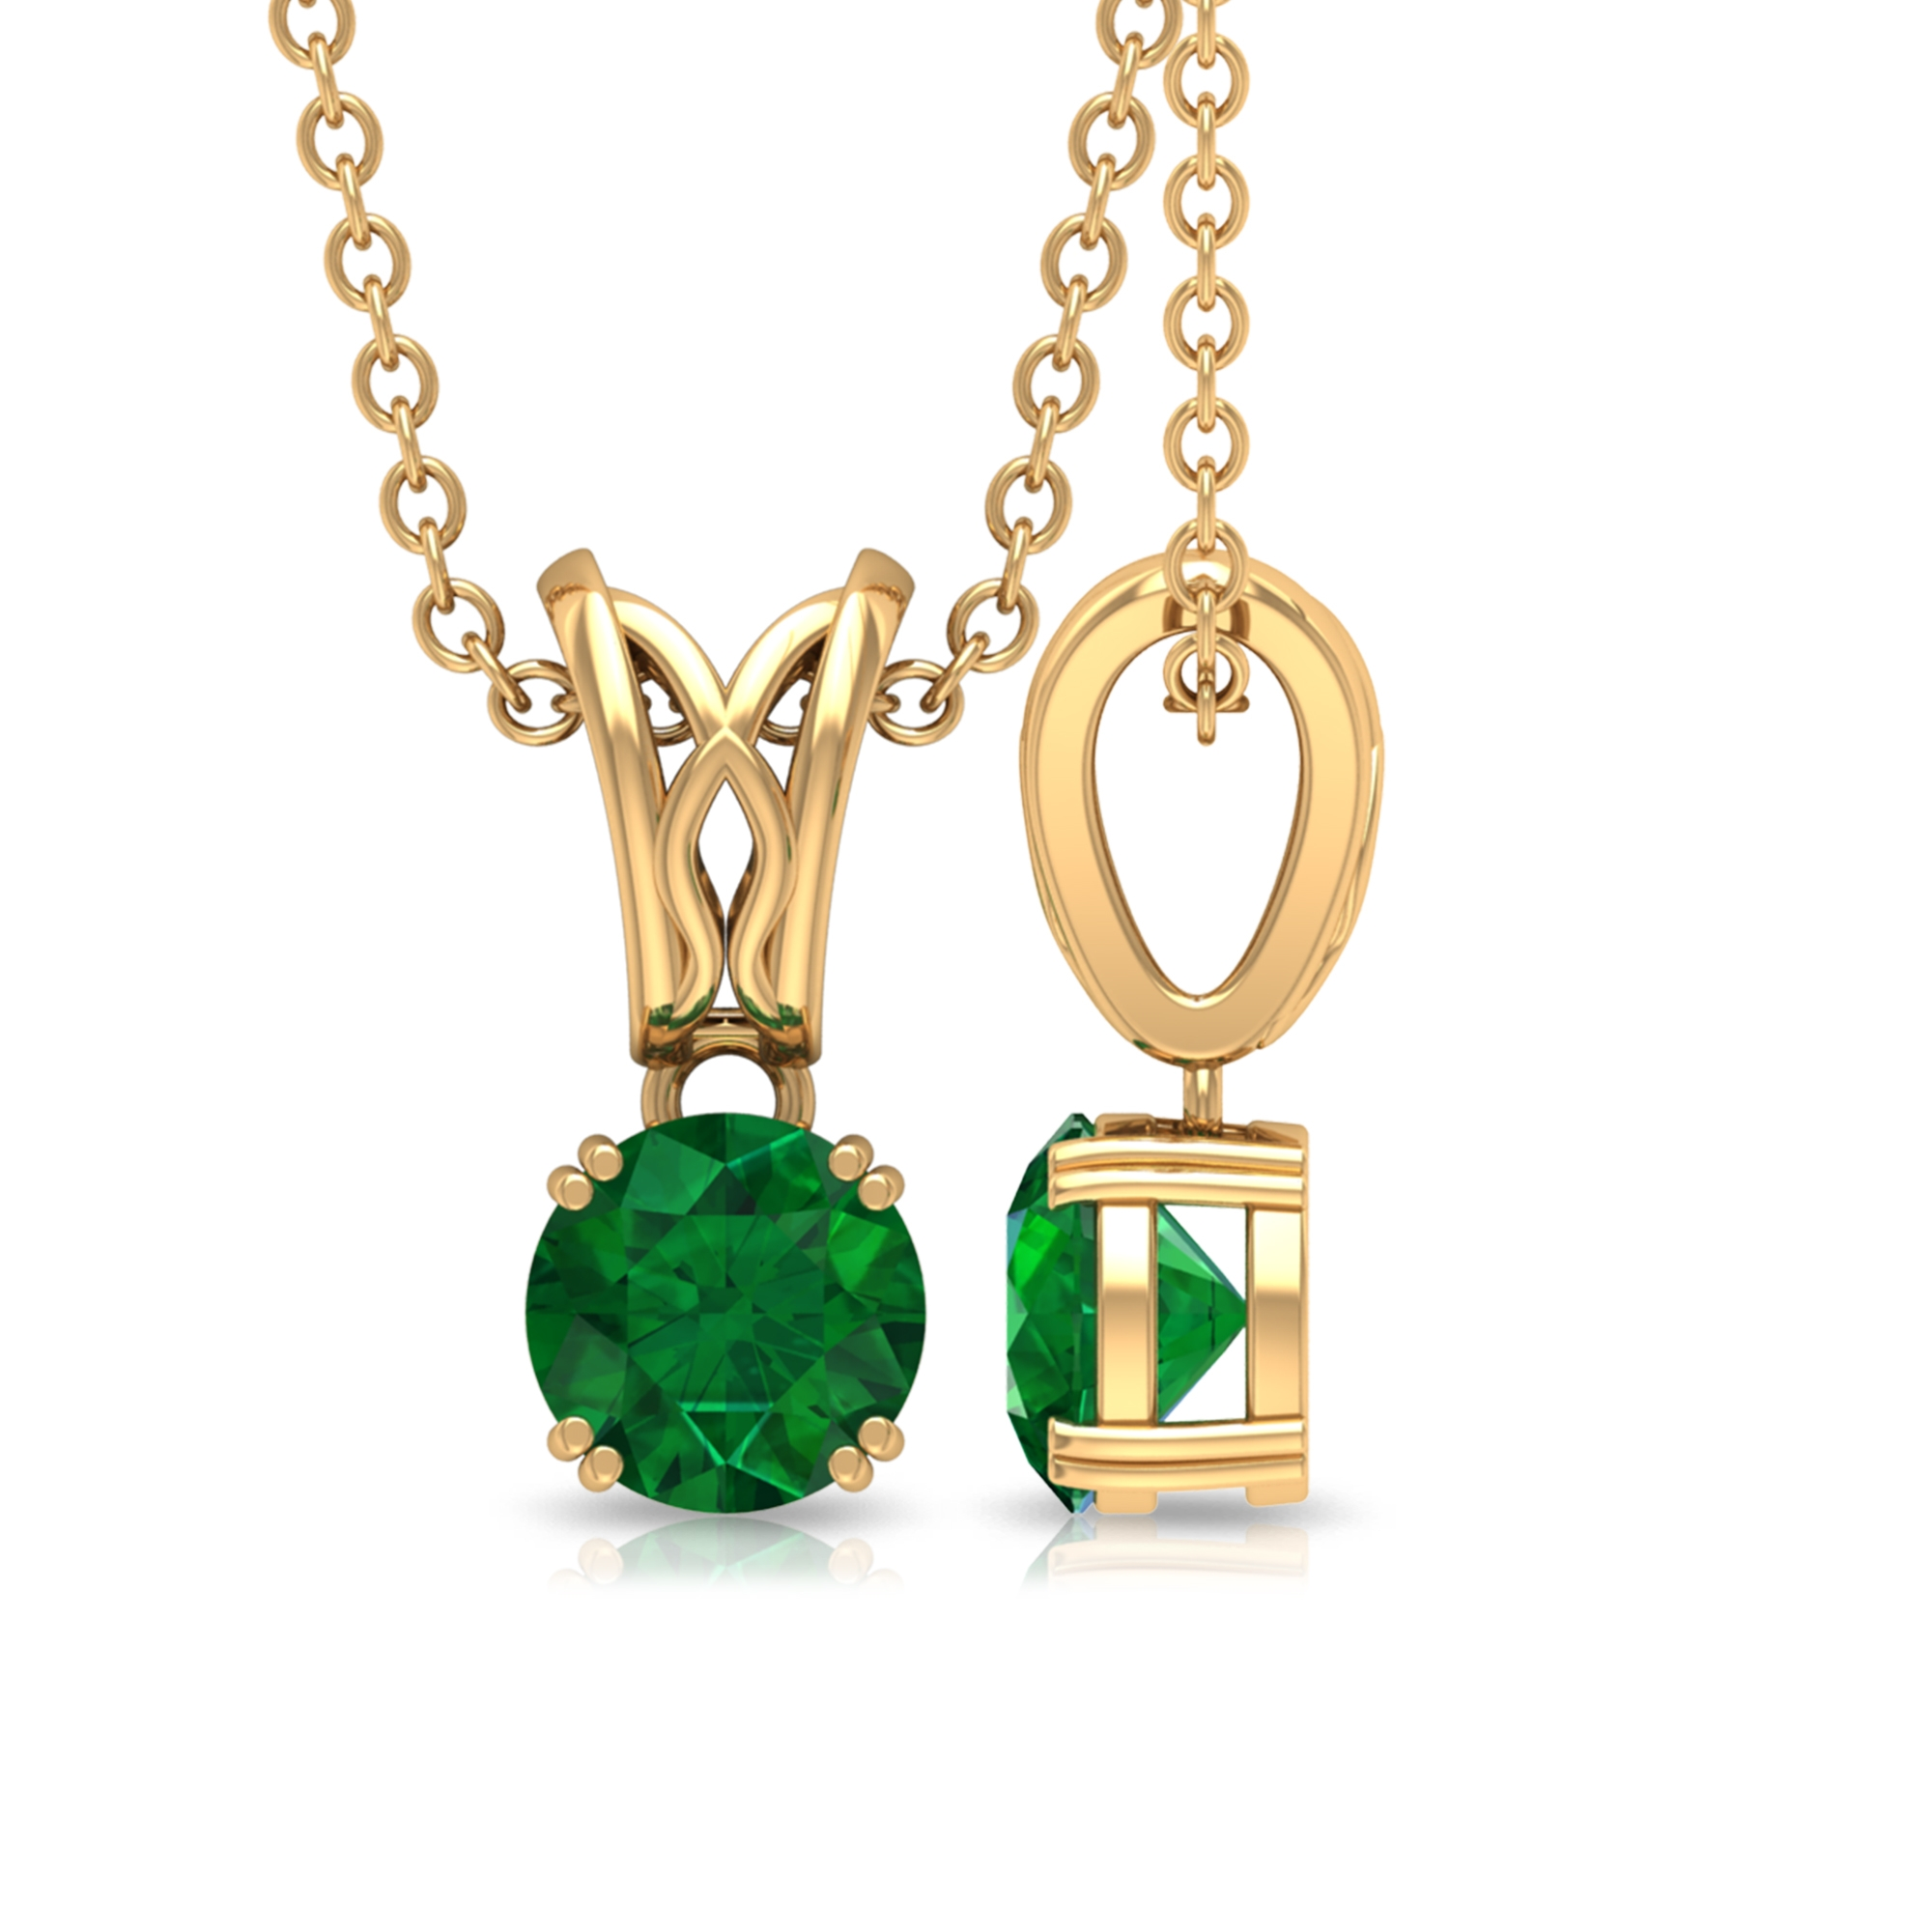 5 MM Round Cut Emerald Solitaire Pendant in Double Prong Set with Decorative Bail